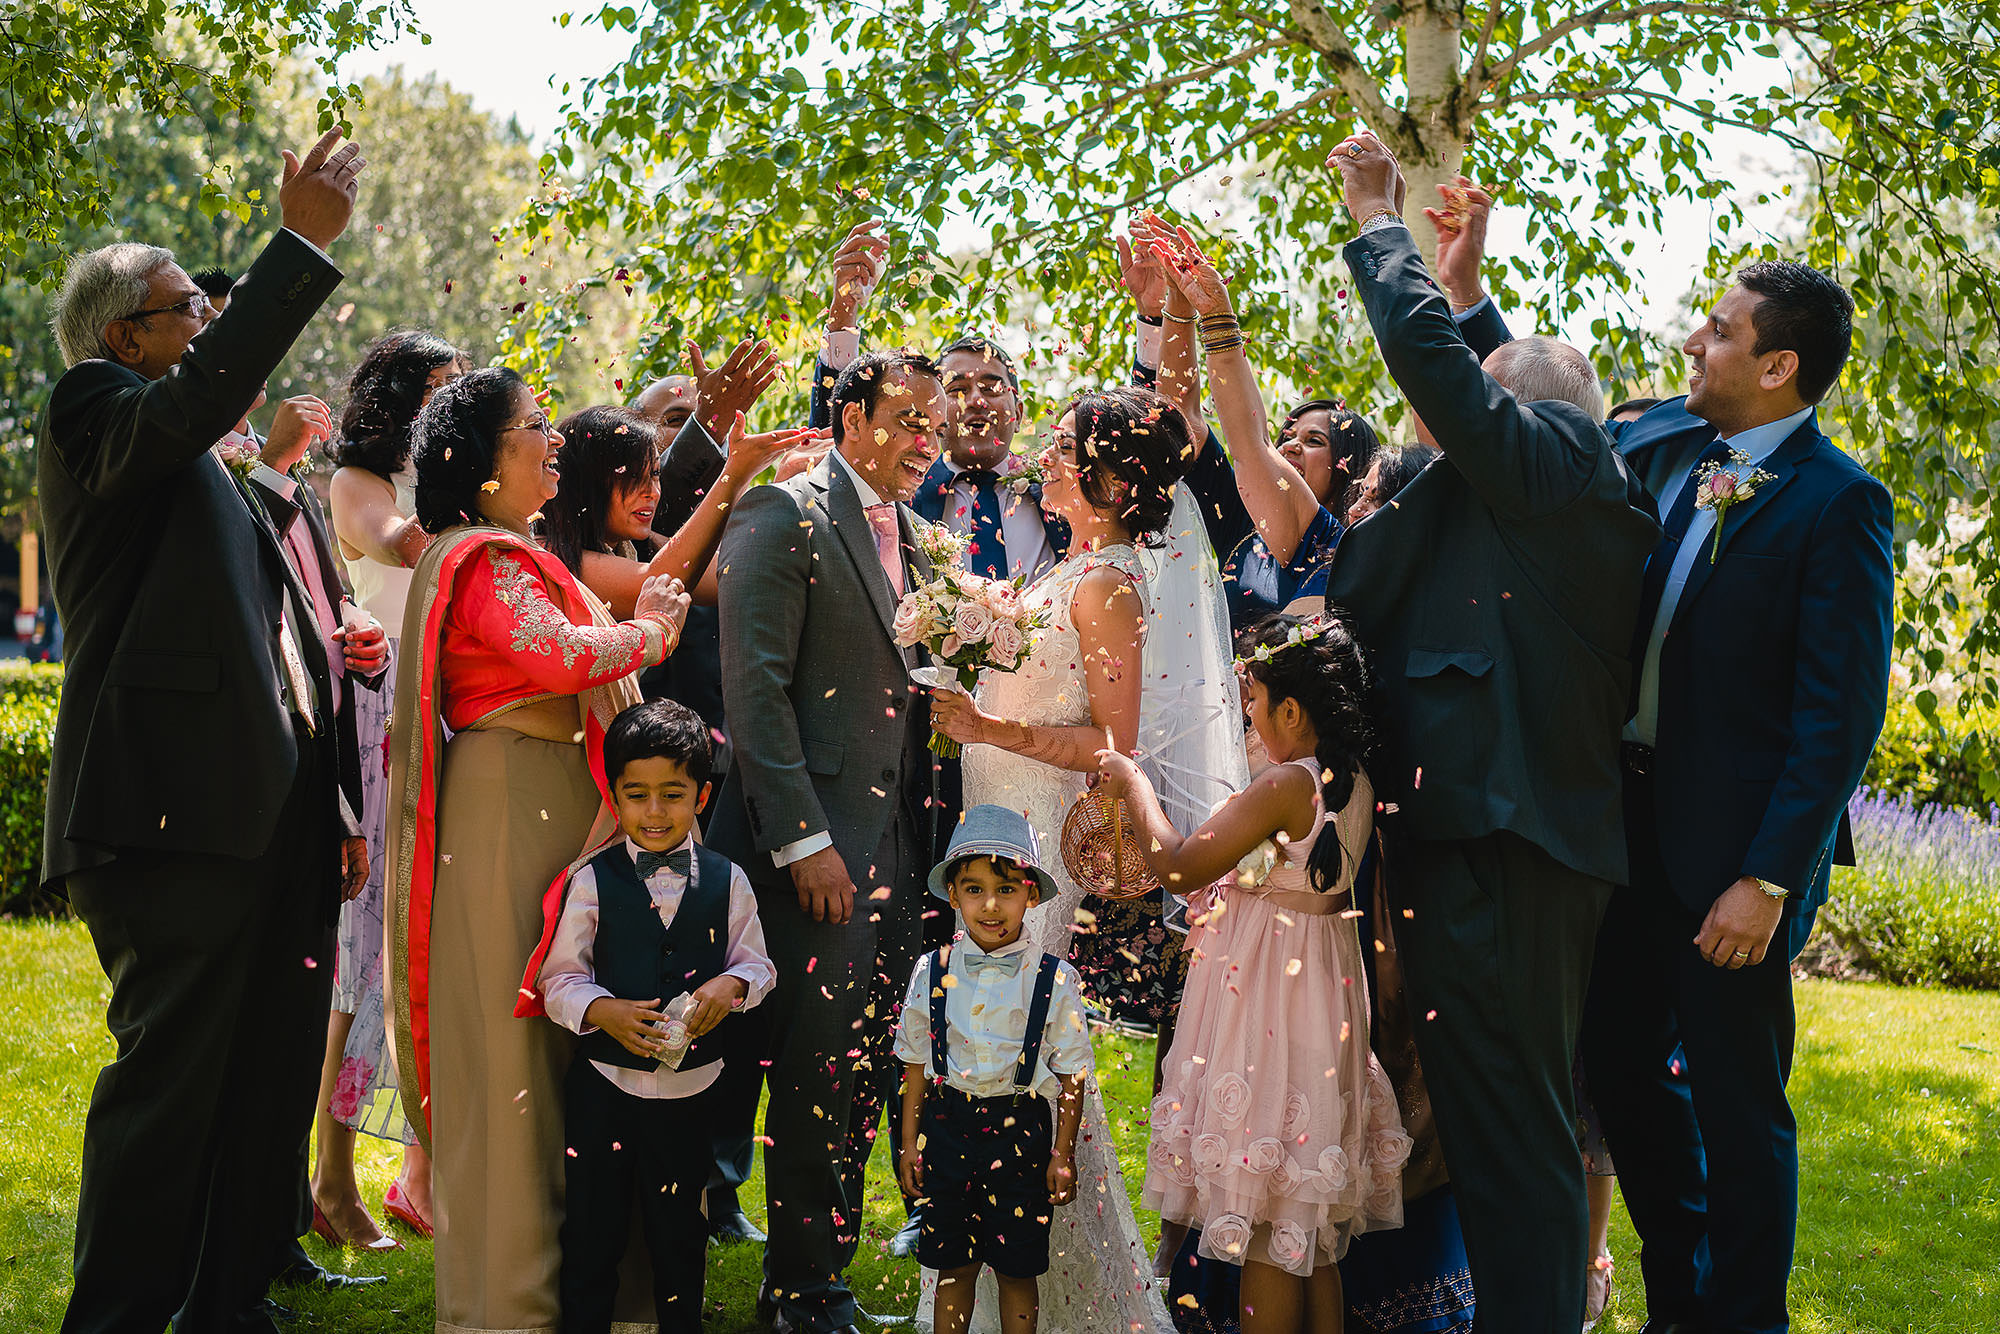 family showering the bride and groom with confetti